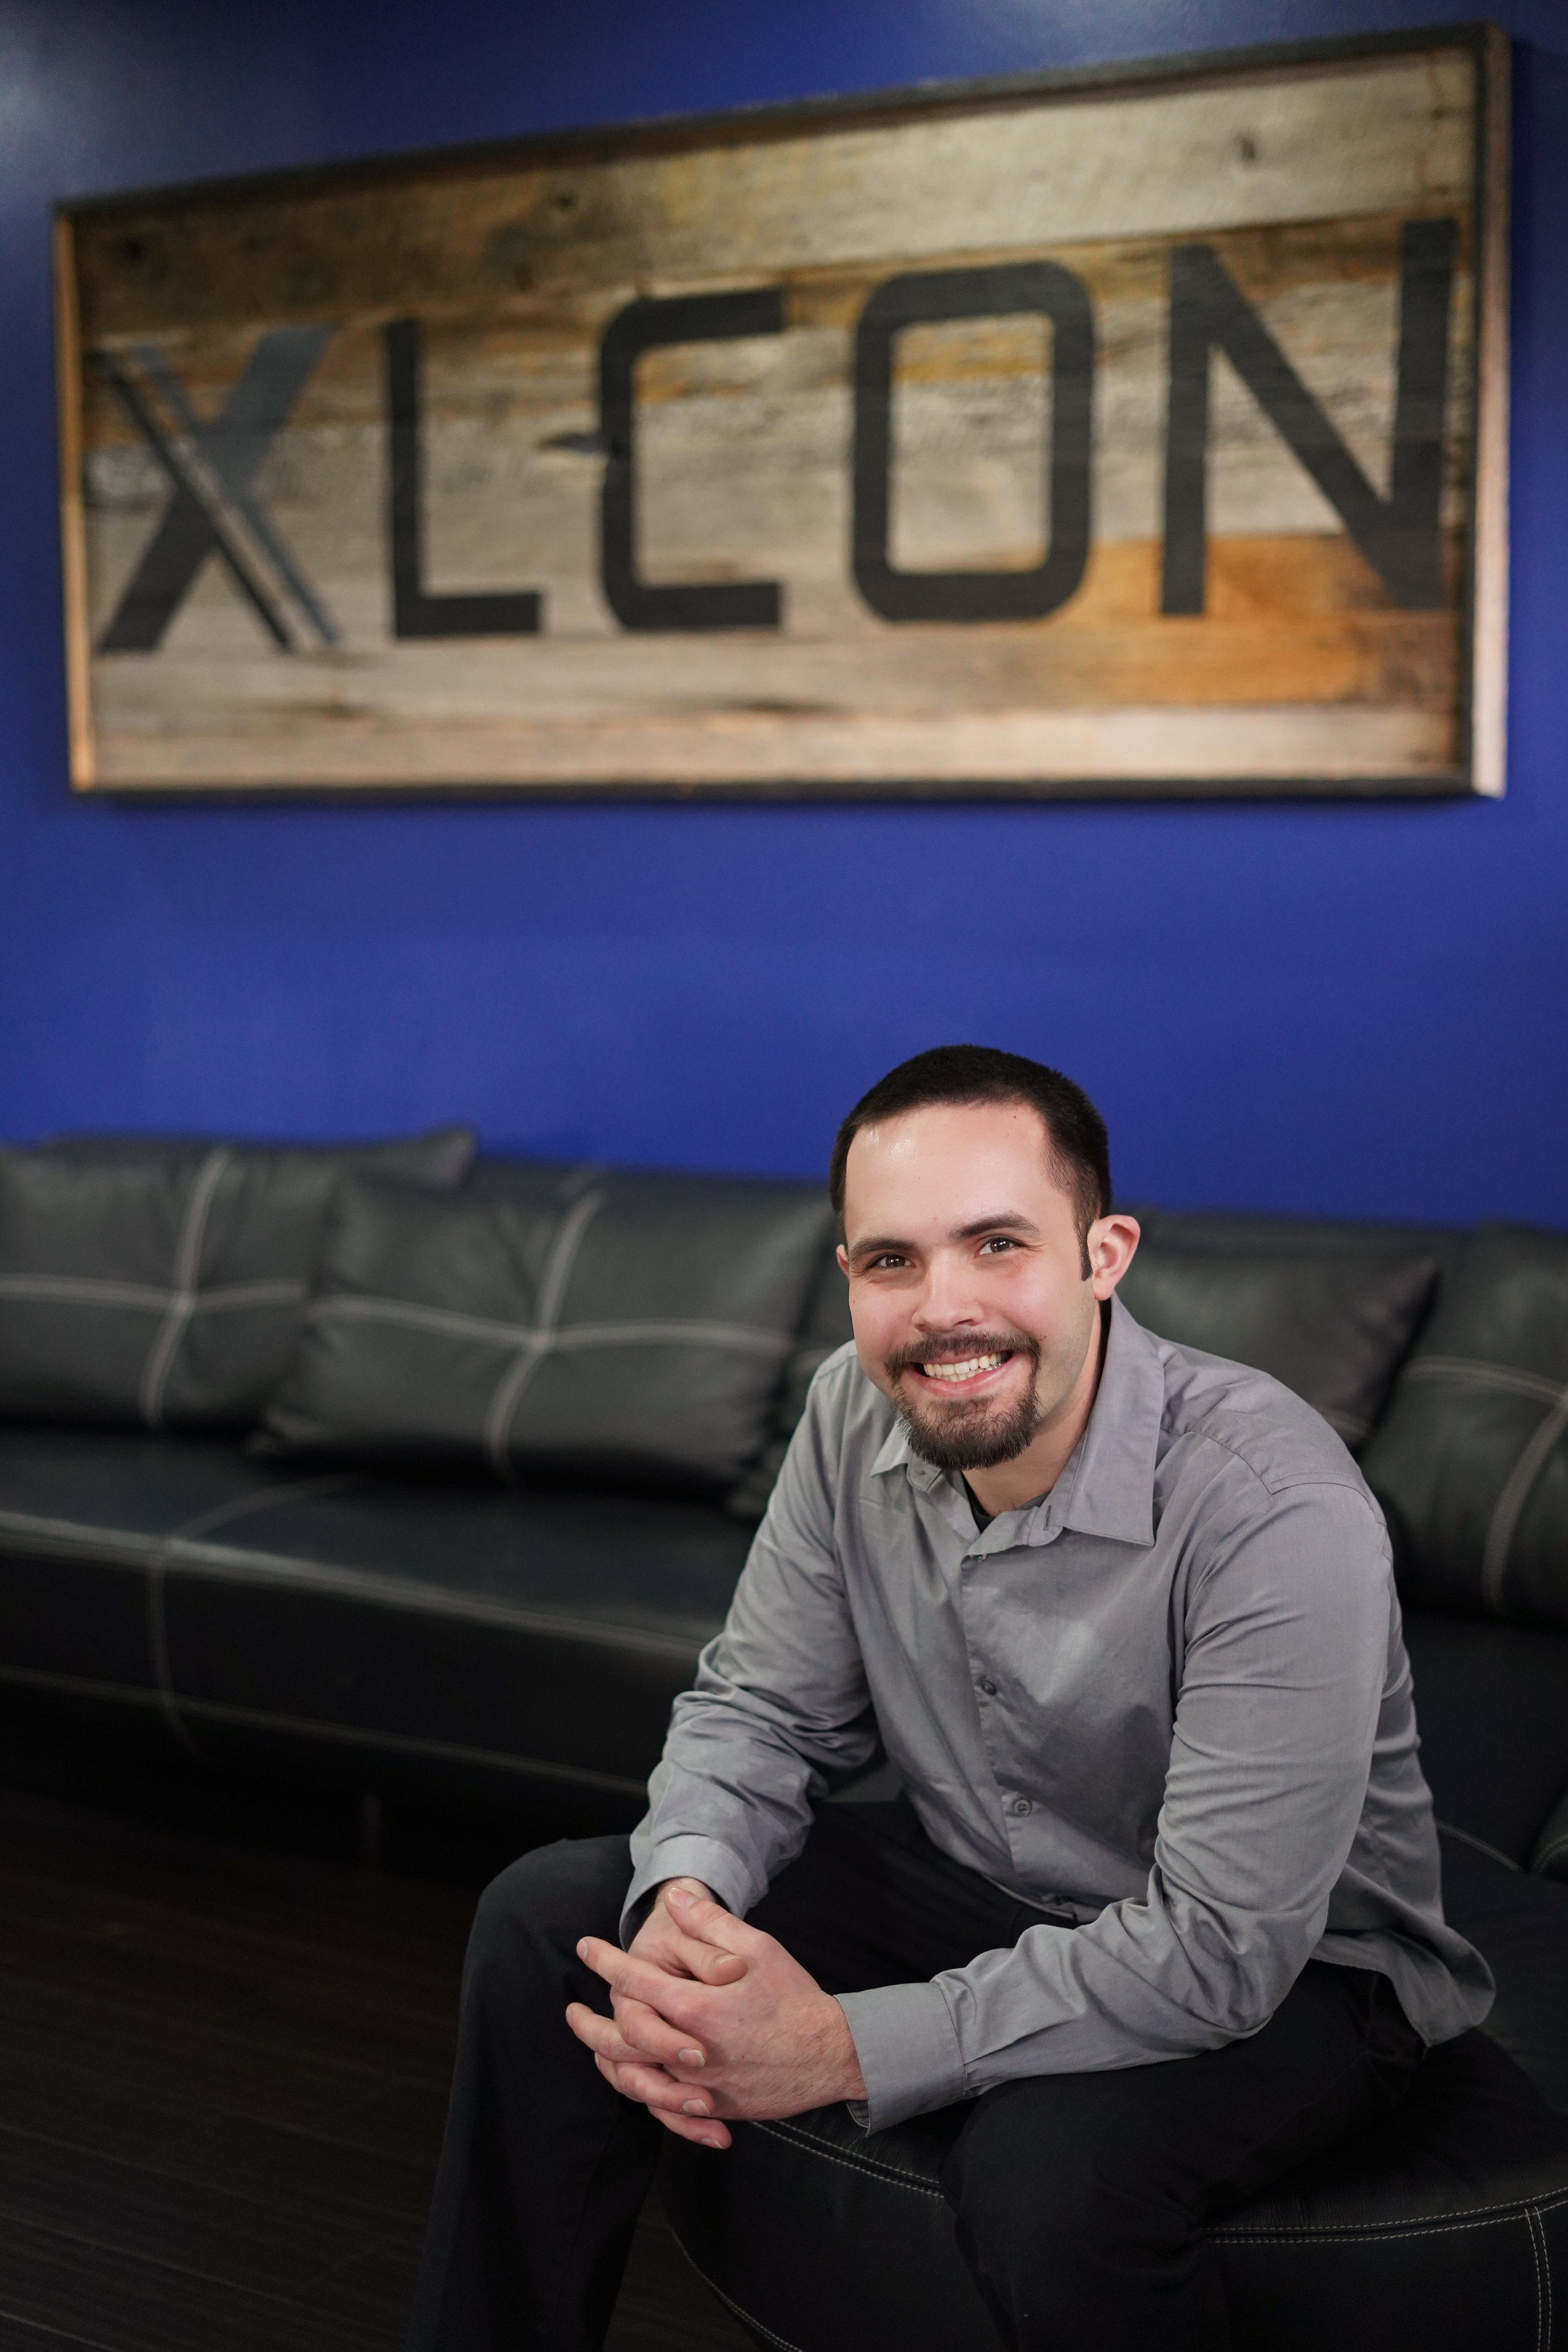 Thomas Hanlon- Jr. Network Engineer   I grew up in Chino, CA for 18 years before moving out to Arizona. I have been out here ever since and love it. I like build personal projects to work on and to bowl in a league when I'm not working for Xlcon.